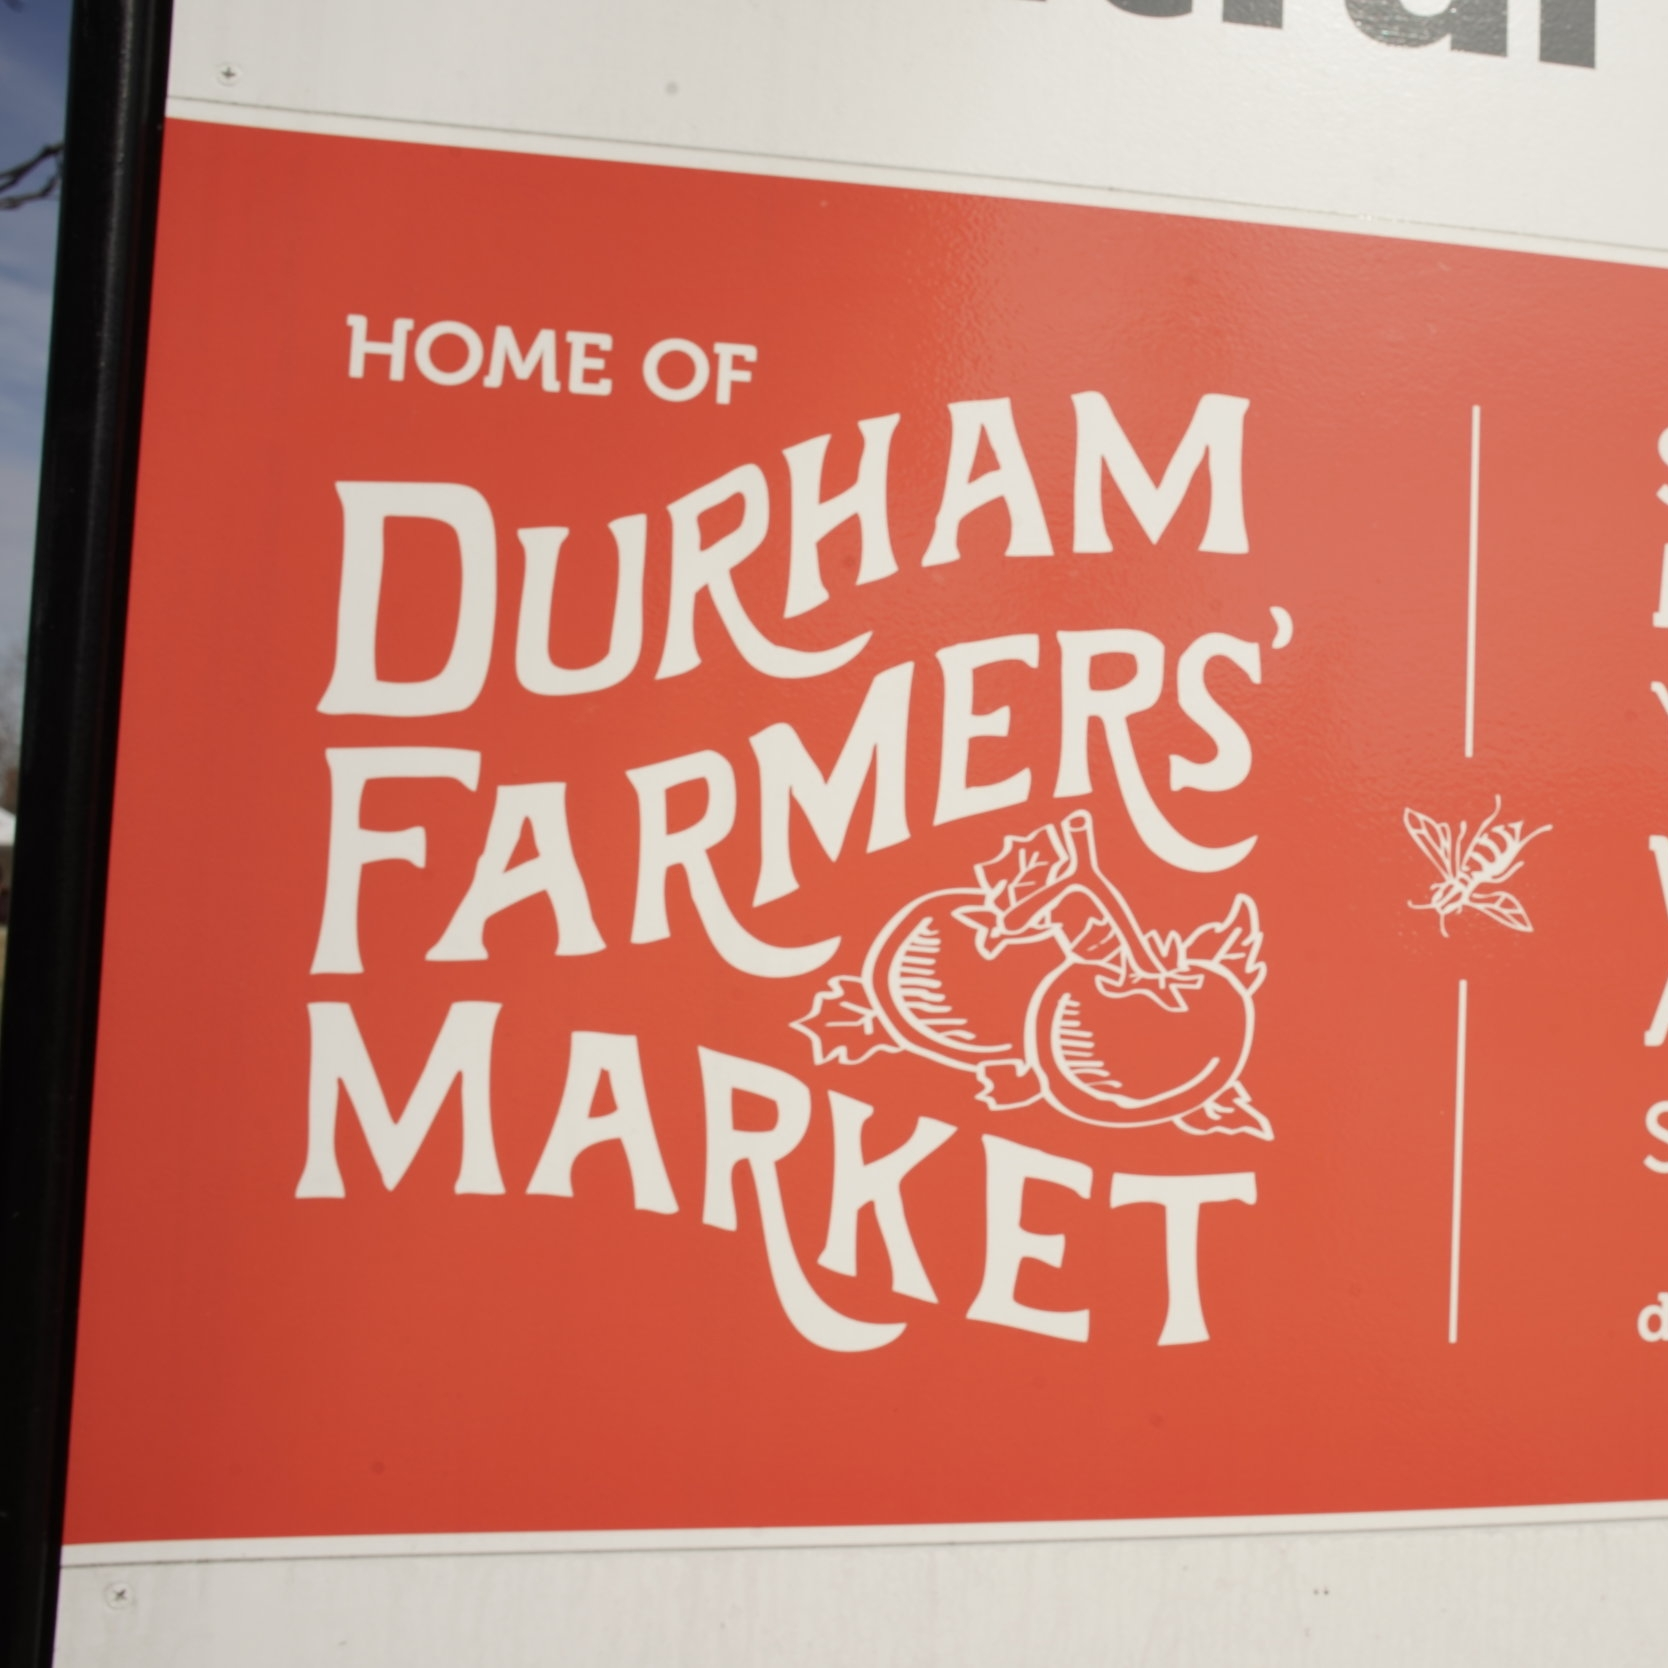 day 6 - Start your weekend at the Durham Farmers' Market and select from all the local goodies. As the day wanes, doll up for dinner and a show: you have reservations at Saint James and tickets to Broadway at DPAC.